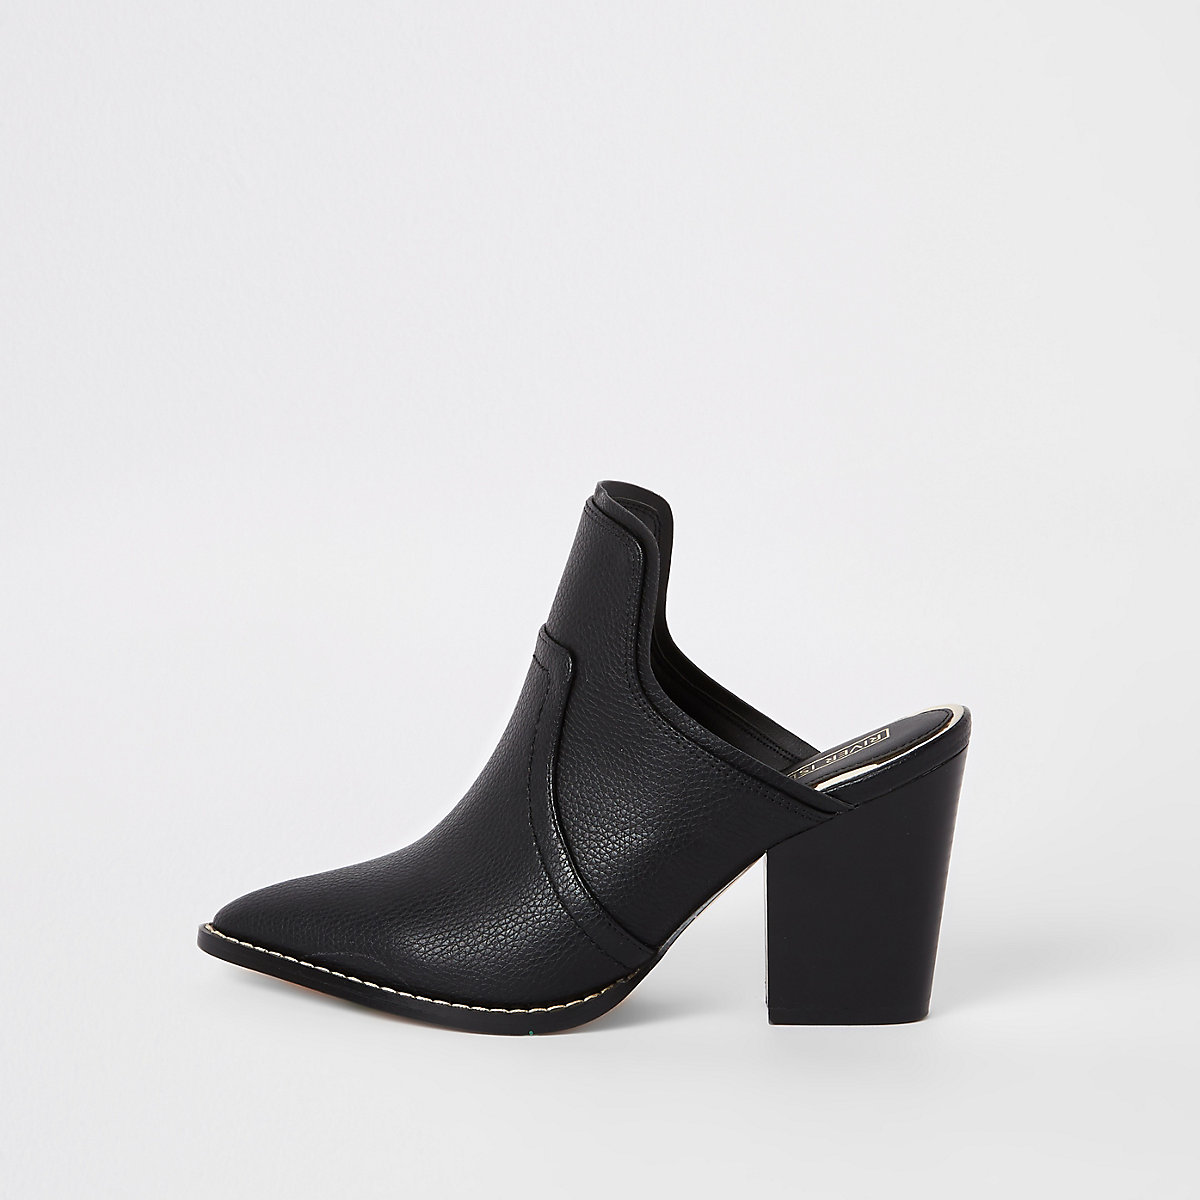 Black pointed toe western mules